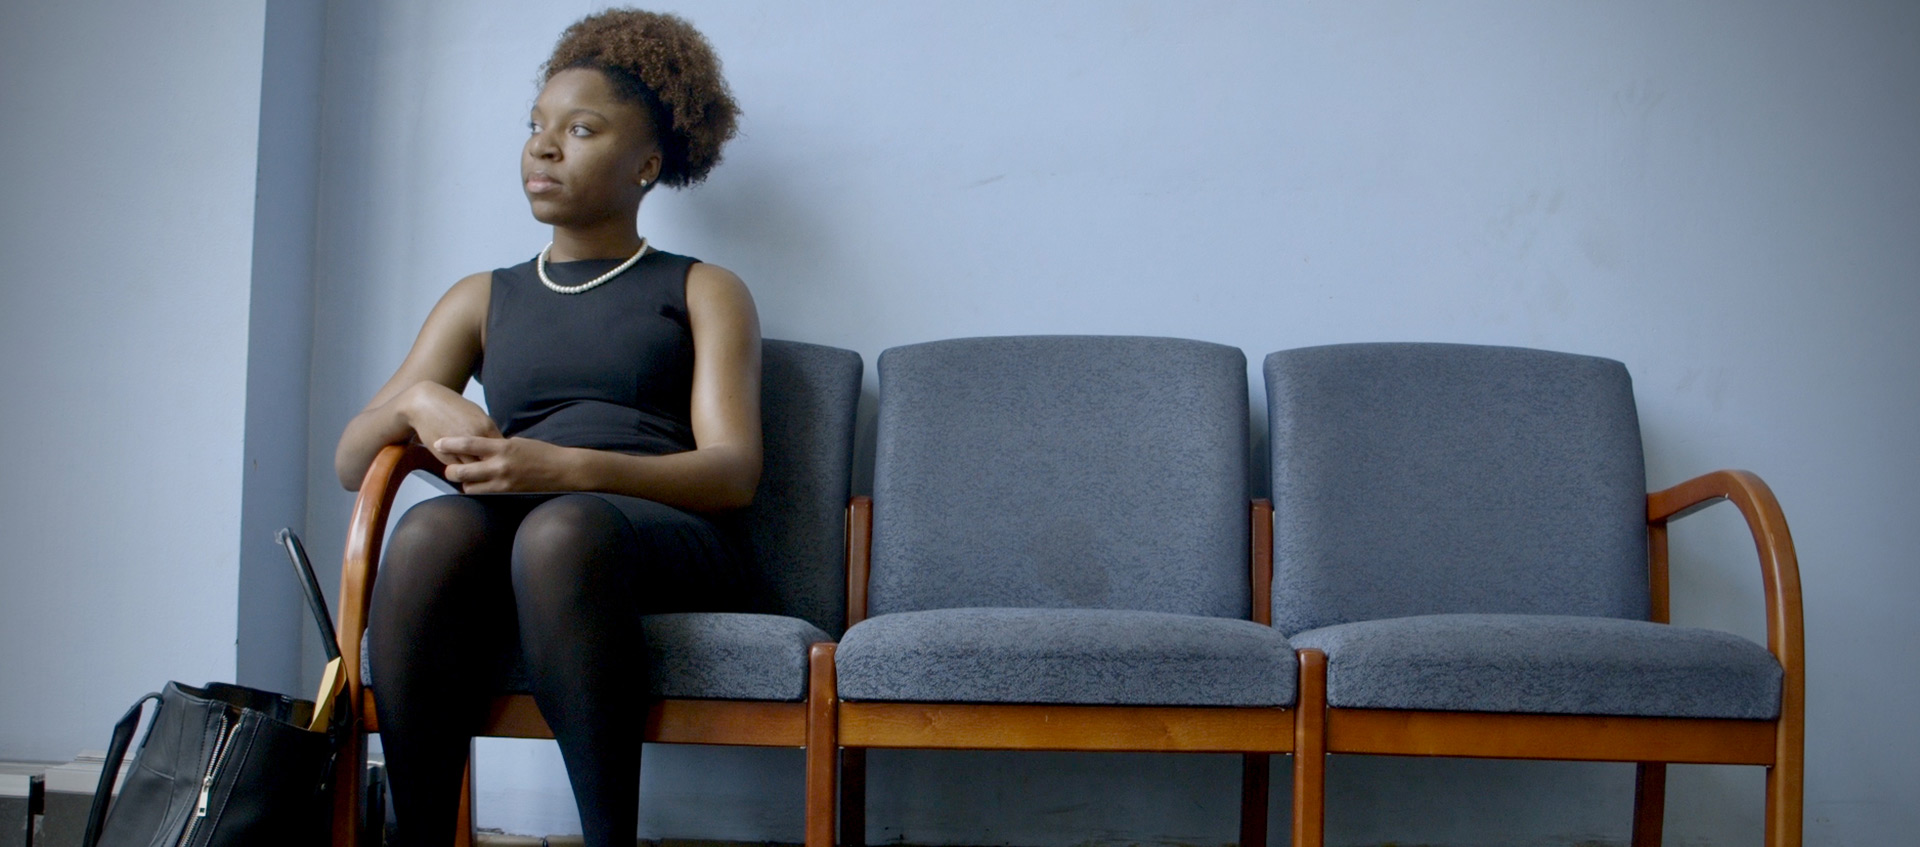 Mayoral candidate Myya Jones sits on a bench in a waiting room